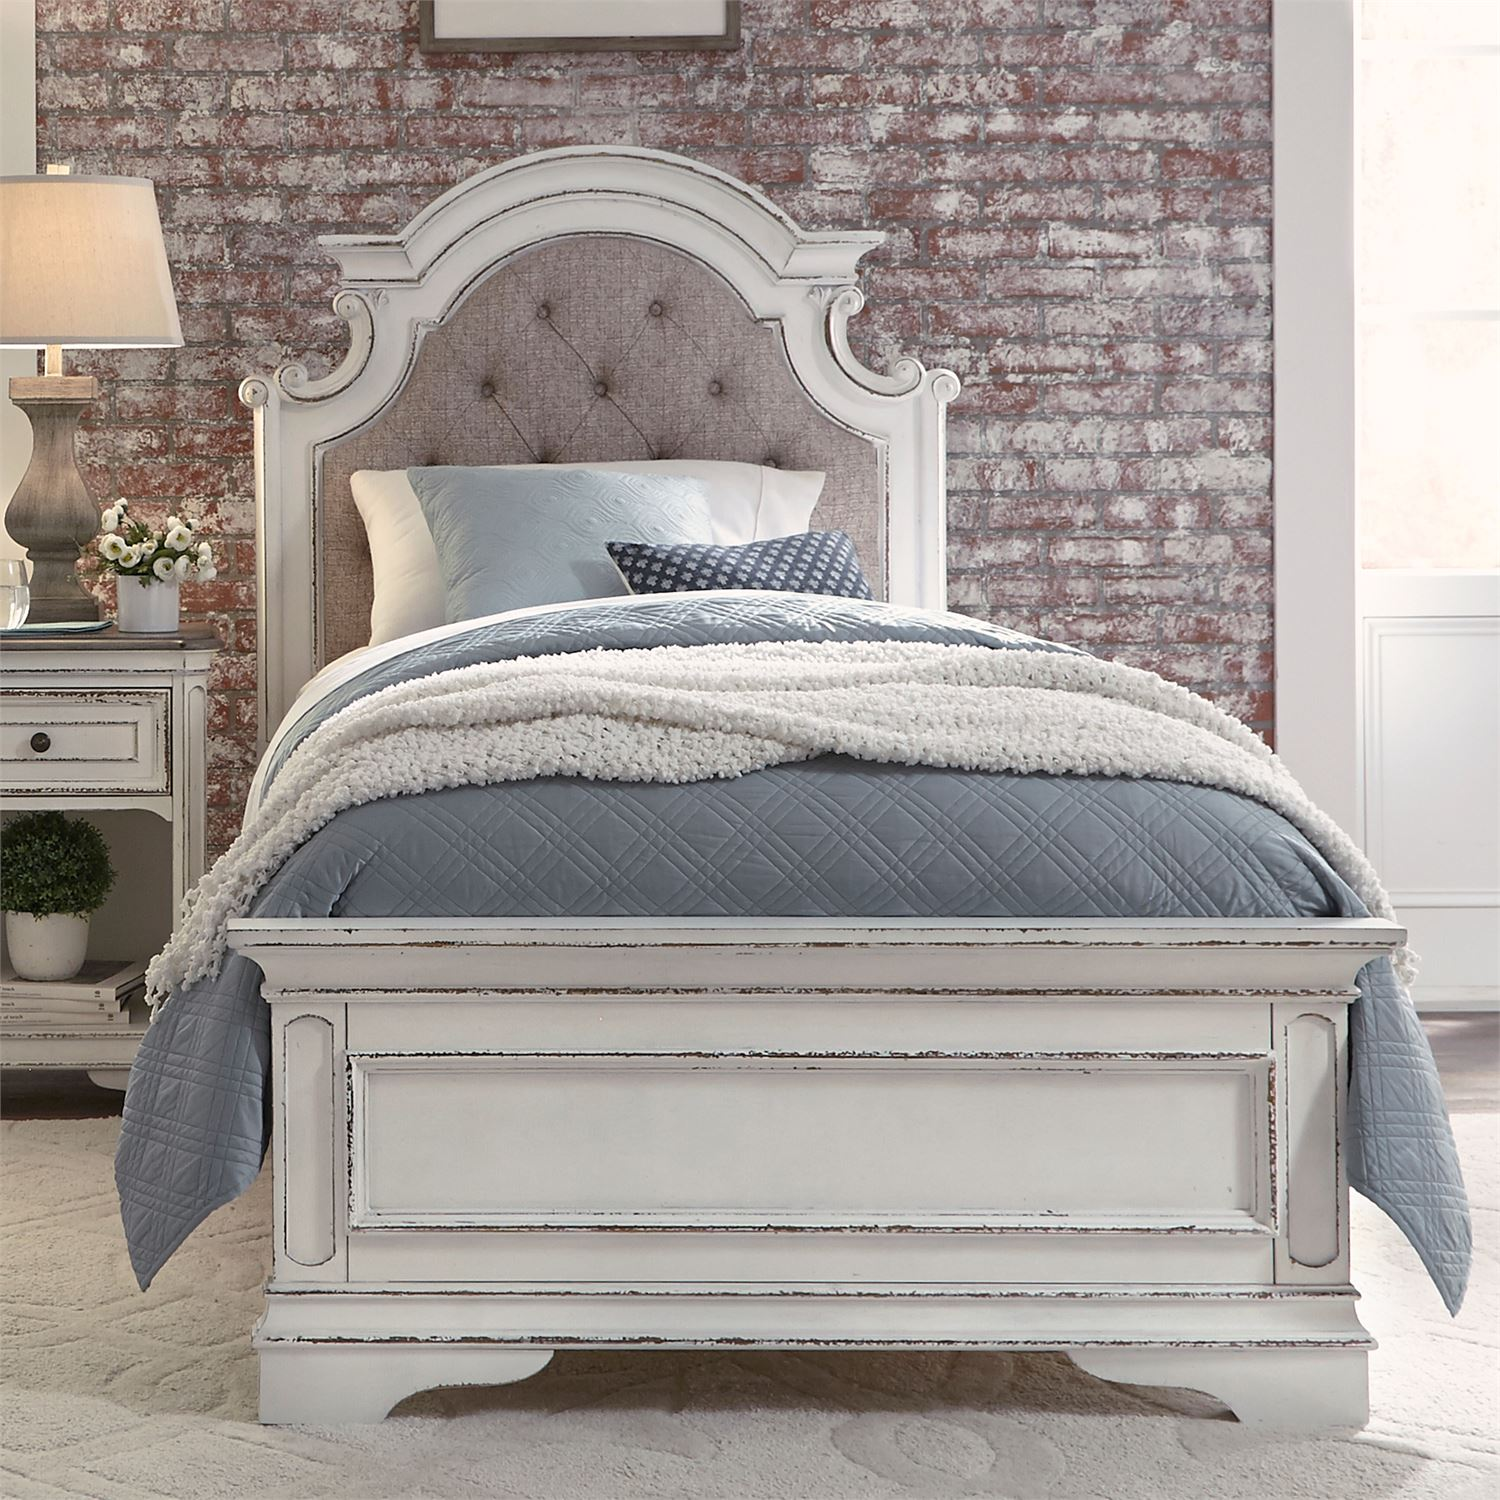 Le Grand Twin Size Upholstered Bed In Antique White